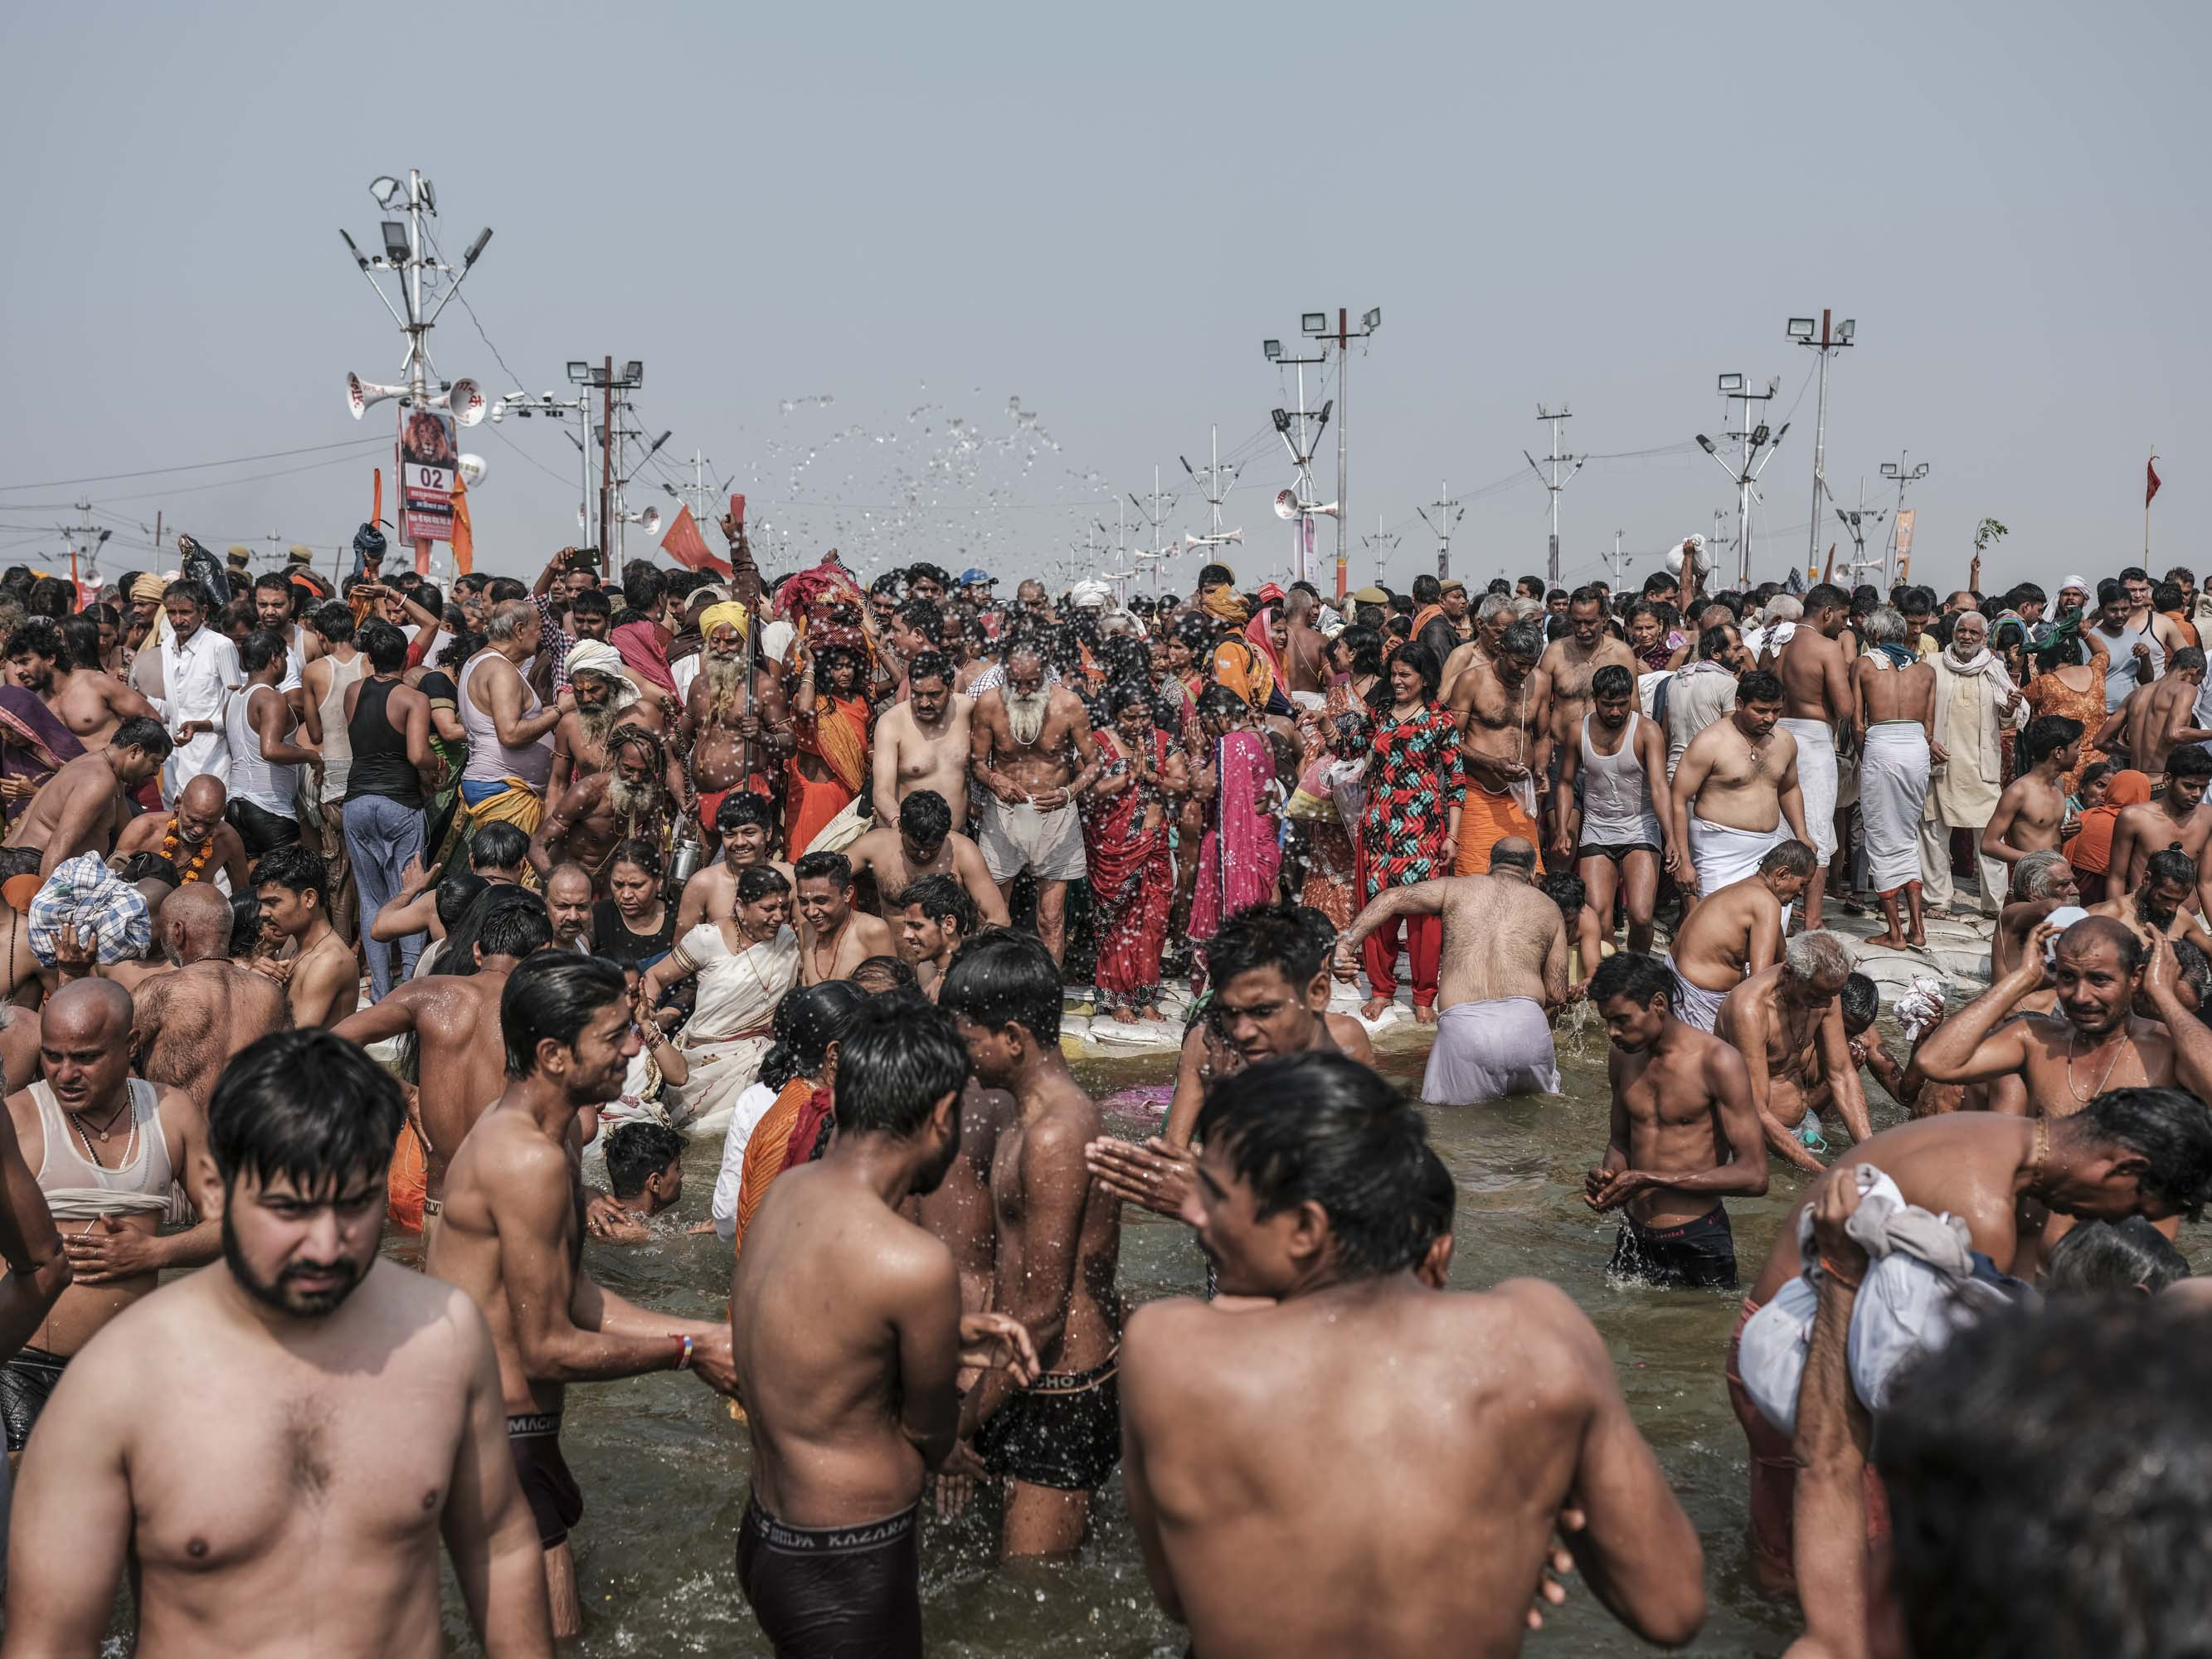 crowd water people pilgrims Kumbh mela 2019 India Allahabad Prayagraj Ardh hindu religious Festival event rivers photographer jose jeuland photography